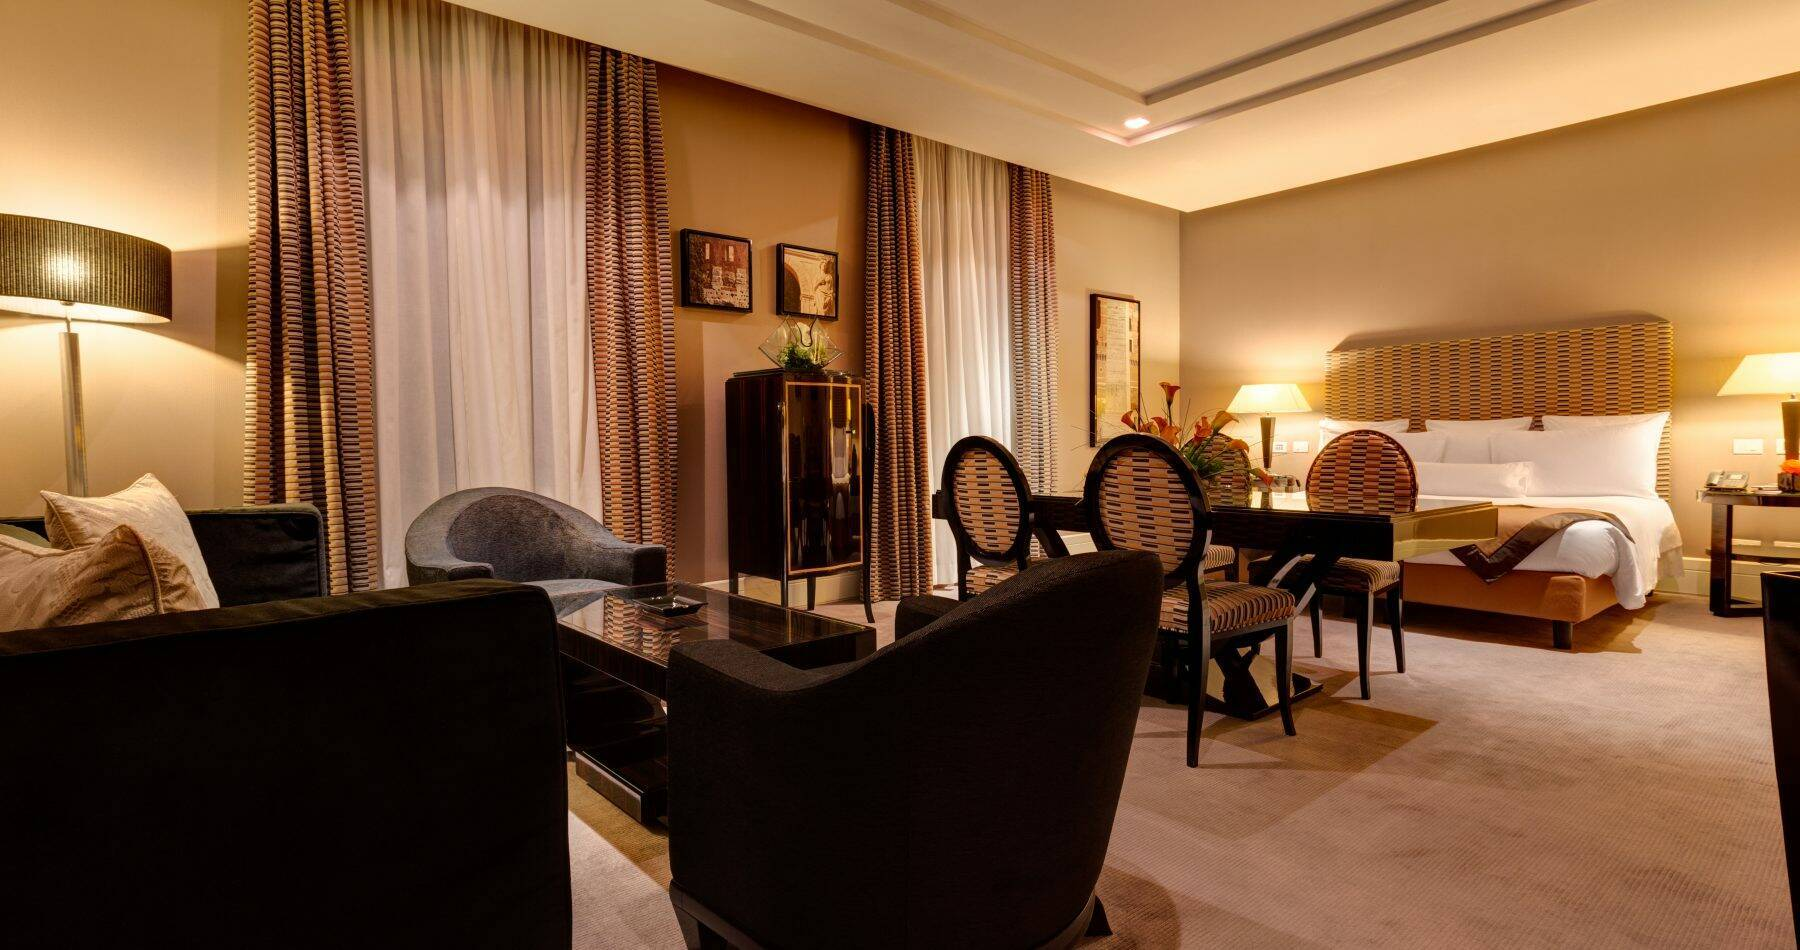 Grand Hotel Via Veneto Open Suite Chambre Rome Italie